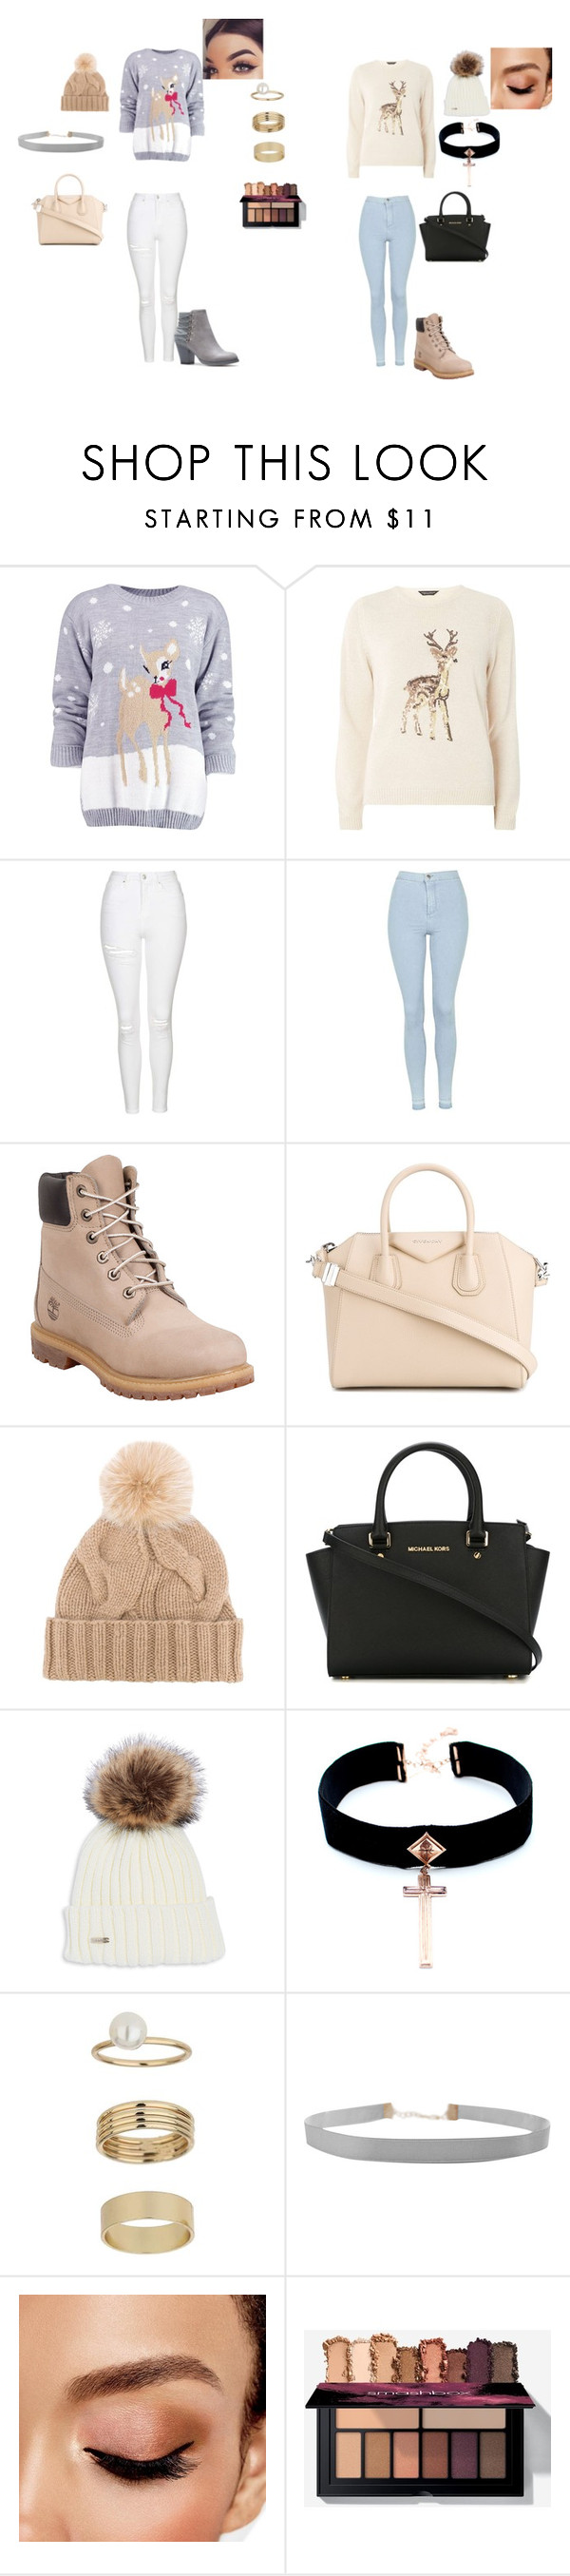 """Untitled #119"" by maritzar625 on Polyvore featuring Boohoo, Dorothy Perkins, Topshop, Timberland, Givenchy, Loro Piana, MICHAEL Michael Kors, VSA, Miss Selfridge and Humble Chic"